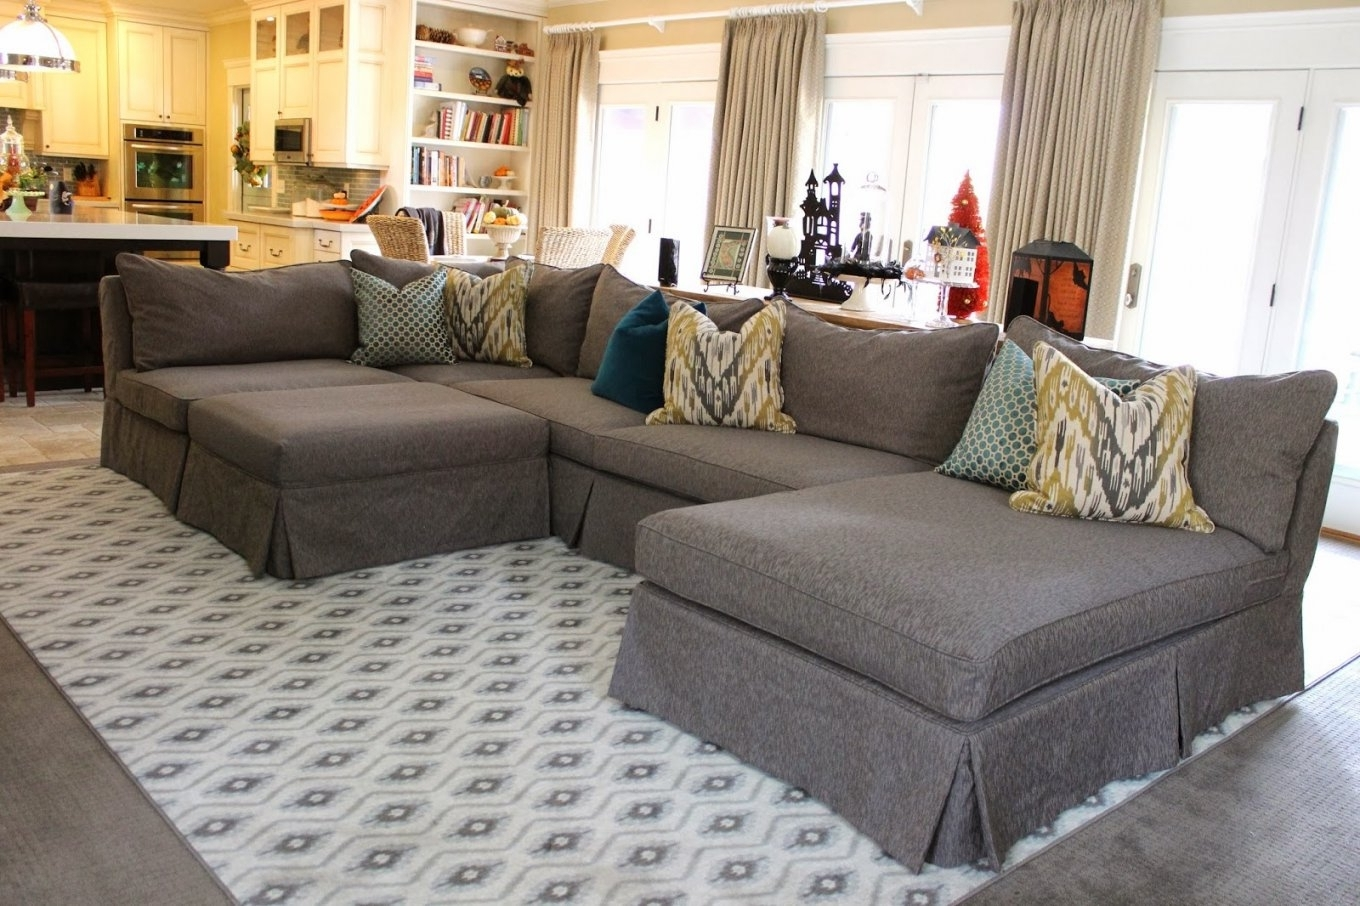 Sofa Set With White Cover Or Slipcover For Chaise Plus For Chaise Inside Best And Newest Slipcovers For Sectional Sofas With Chaise (View 10 of 15)